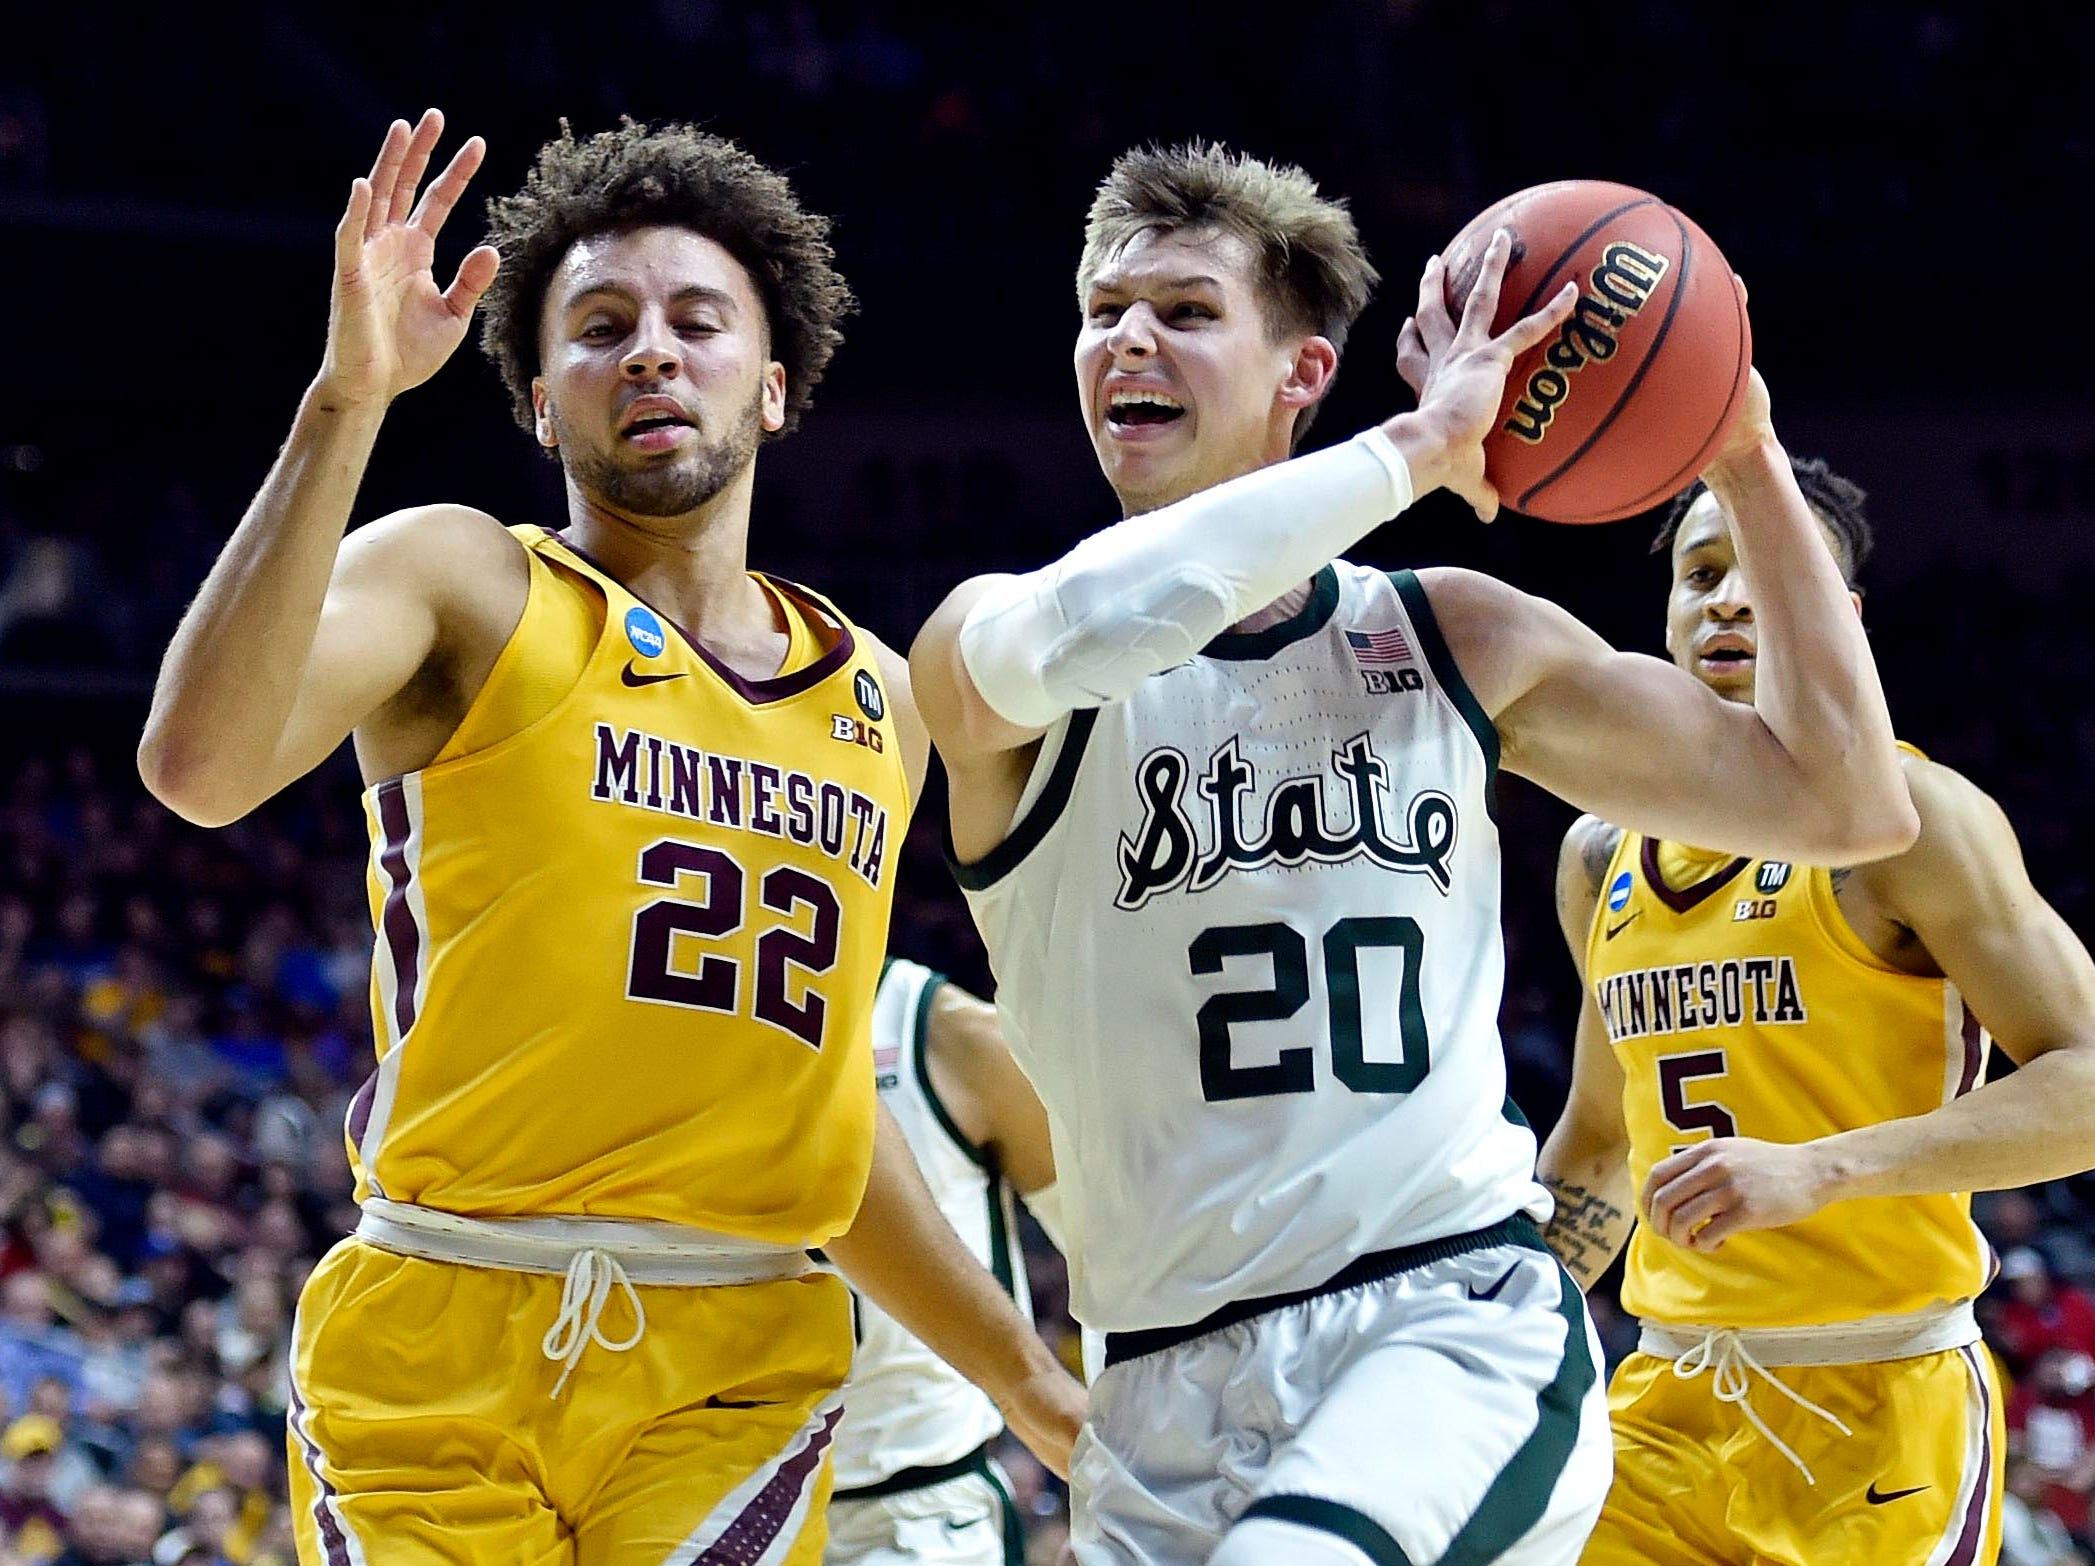 Mar 23, 2019; Des Moines, IA, United States; Michigan State Spartans guard Matt McQuaid (20) drives to the basket against Minnesota Golden Gophers guard Gabe Kalscheur (22) during the second half in the second round of the 2019 NCAA Tournament at Wells Fargo Arena. Mandatory Credit: Jeffrey Becker-USA TODAY Sports